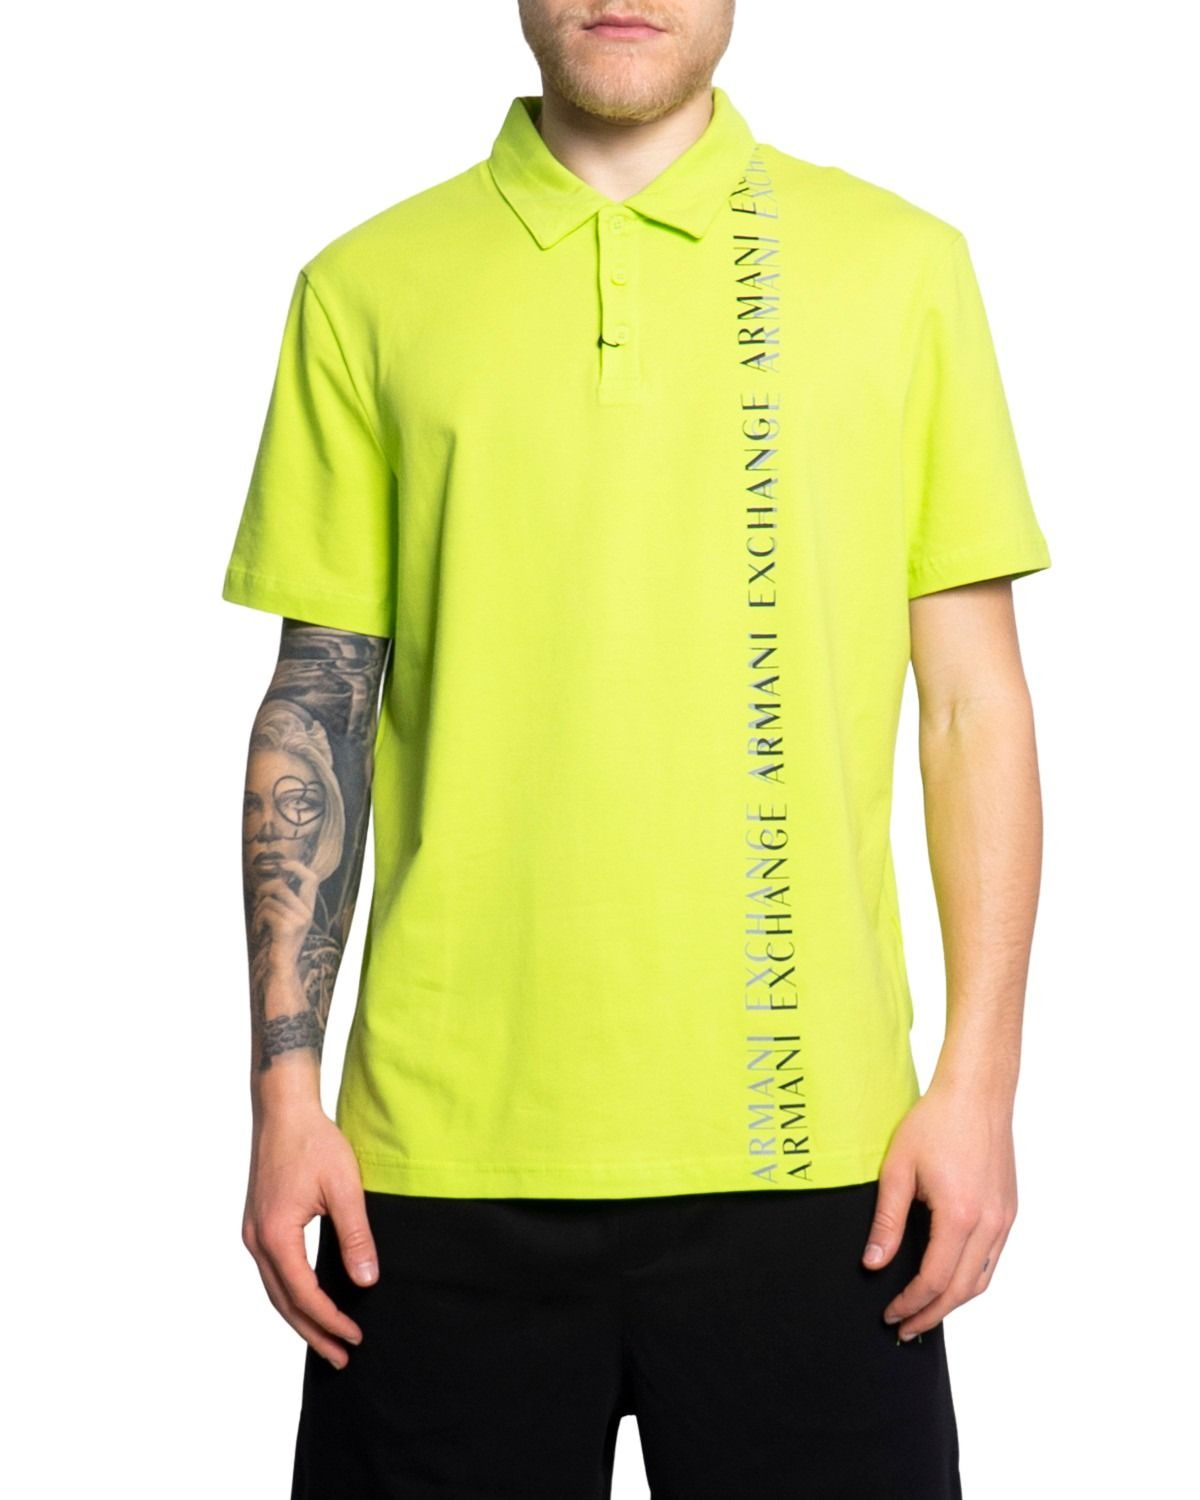 Armani Exchange ARMANI EXCHANGE MEN'S 3KZFFMZJ7UZYELLOW YELLOW COTTON POLO SHIRT